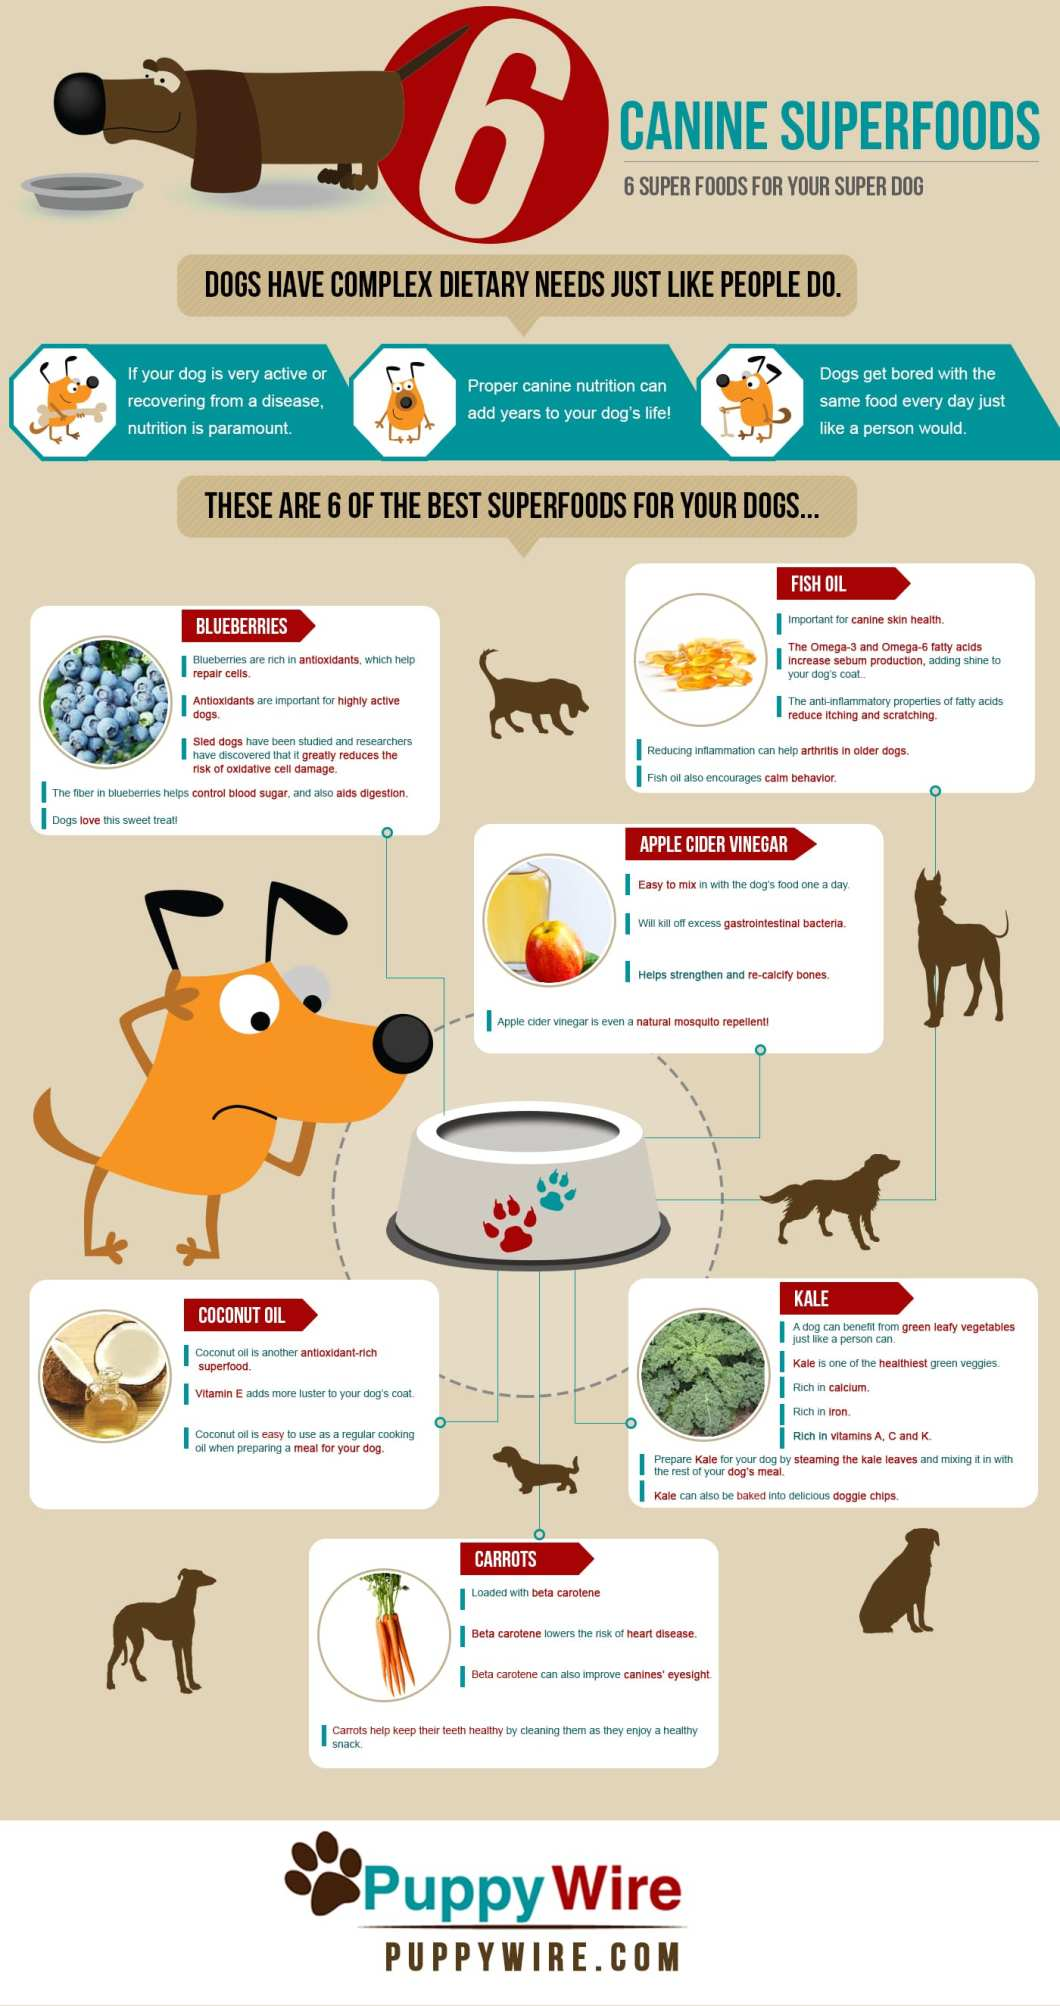 6 Nutrient-Rich Superfoods that Boost Your Dog's Health - Infographic